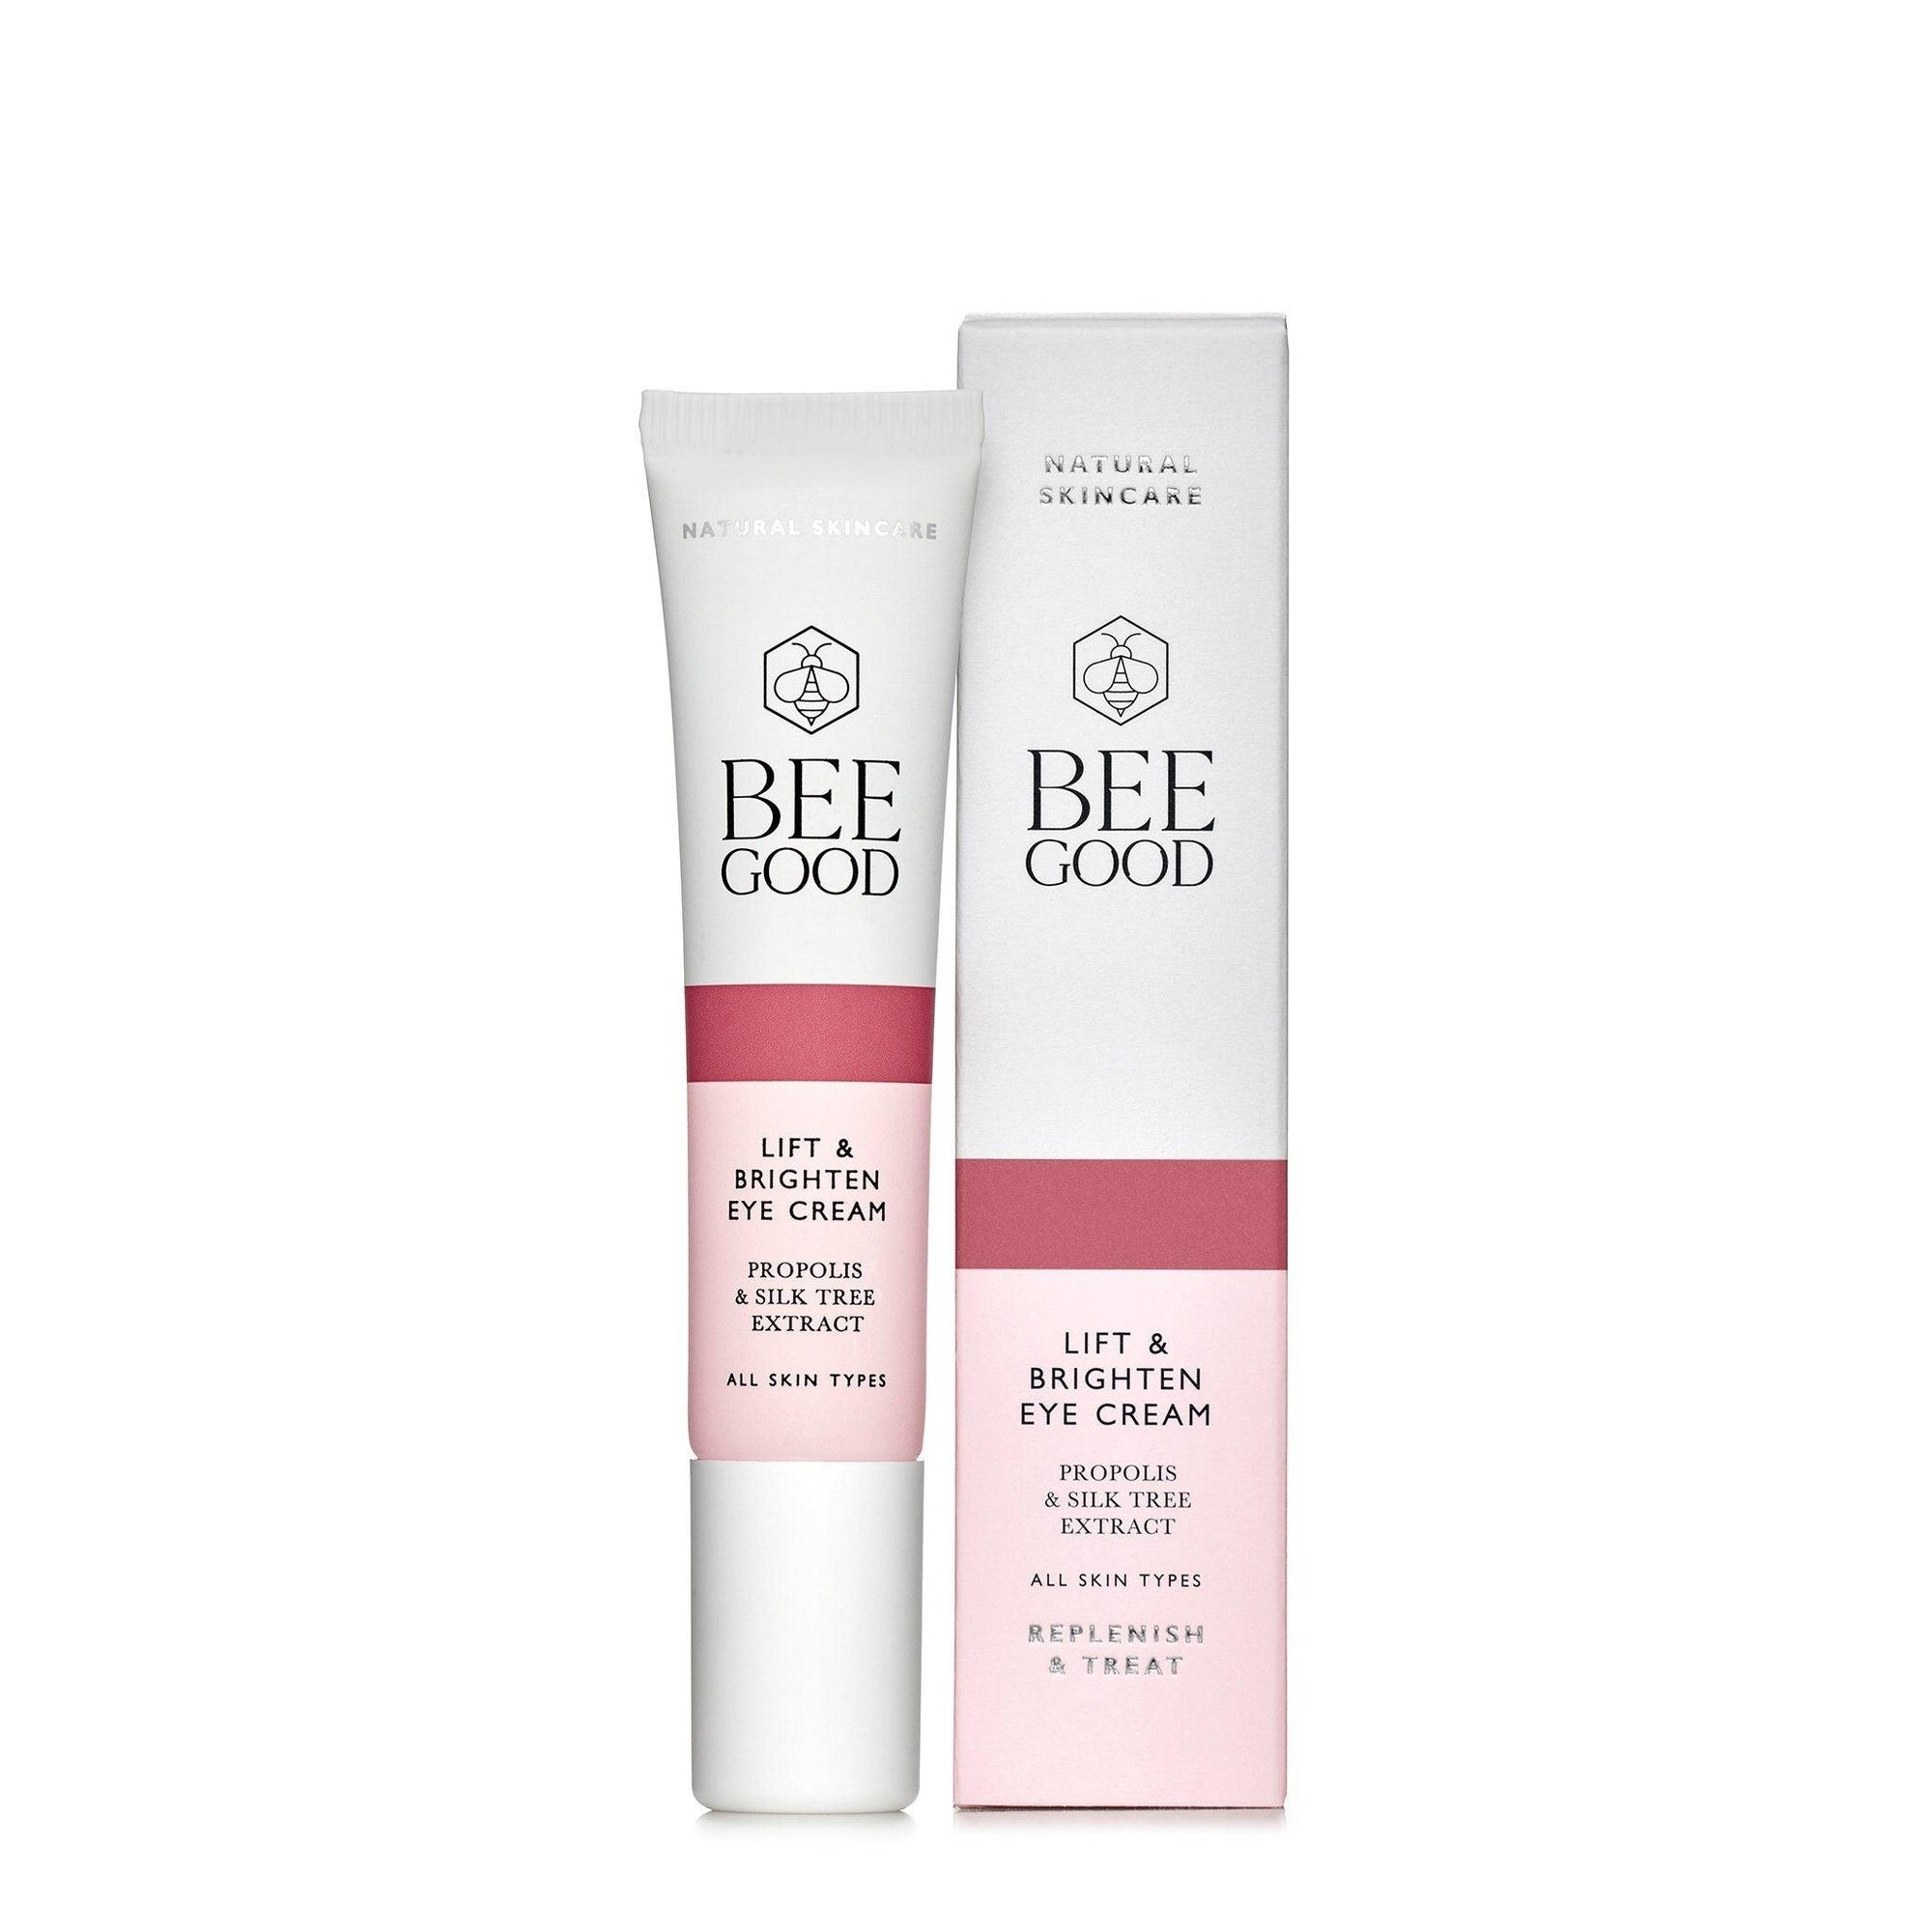 Lift & Brighten Eye Cream 15ml Face Bee Good